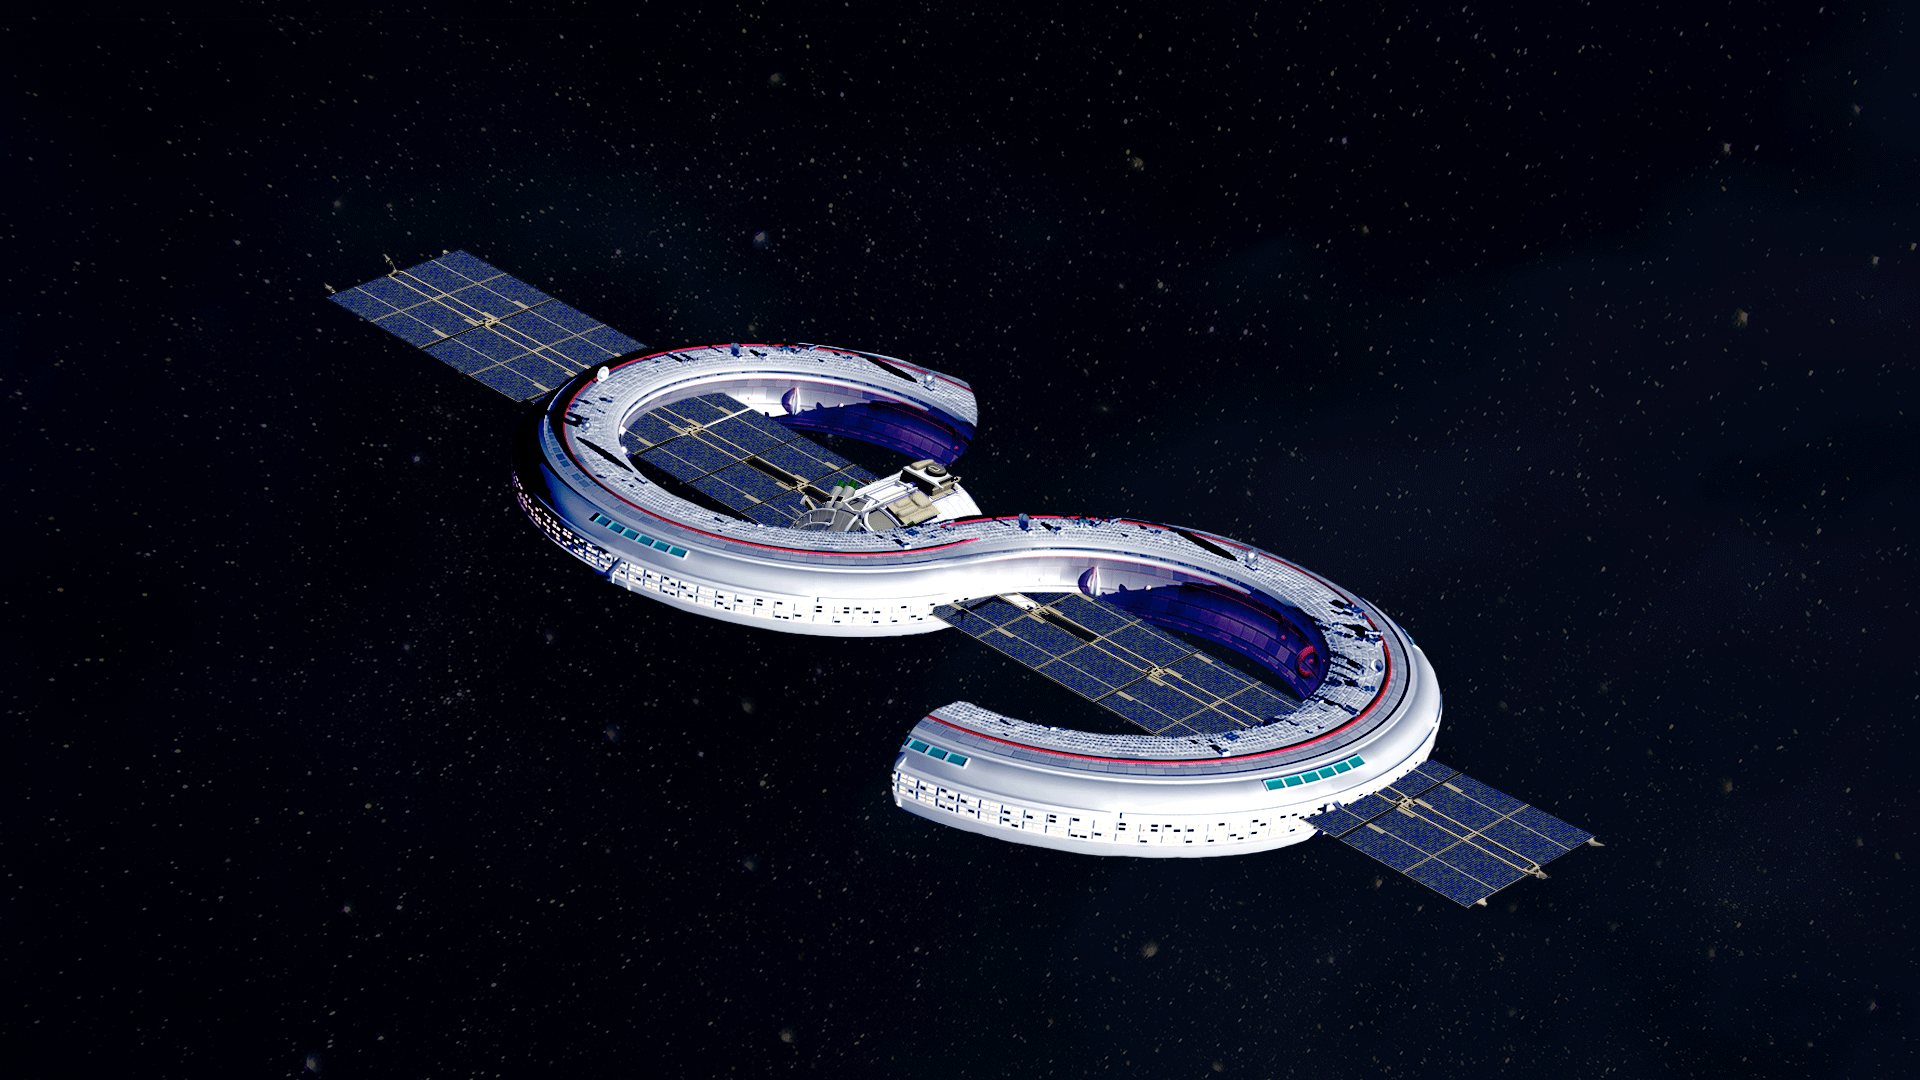 Illustration of a space station in the shape of a dollar bill sign.